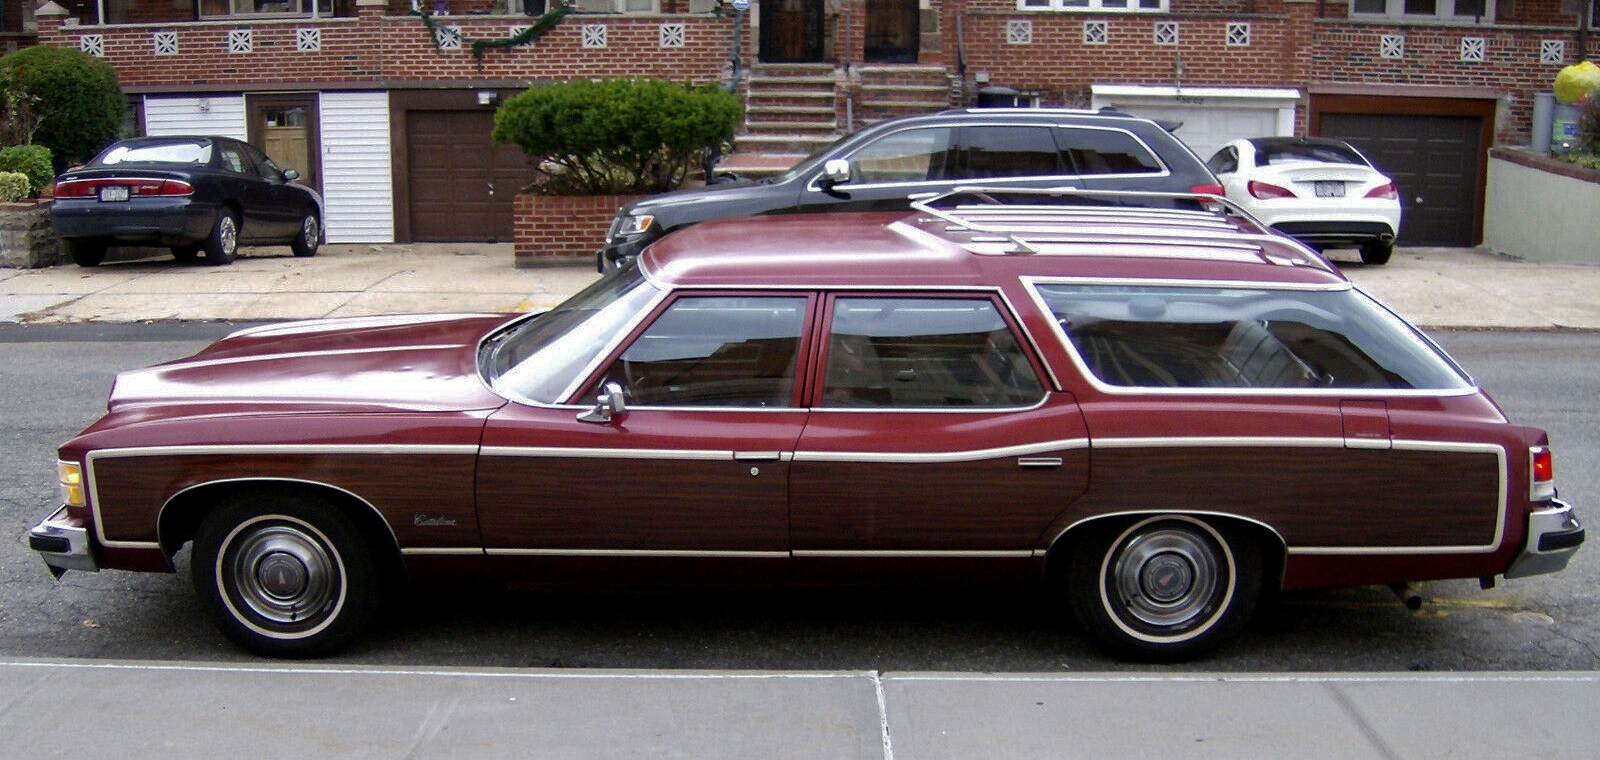 1974 Pontiac Catalina 455 Station Wagon Estate Break 80k ... |1975 Catalina Station Wagon Buick